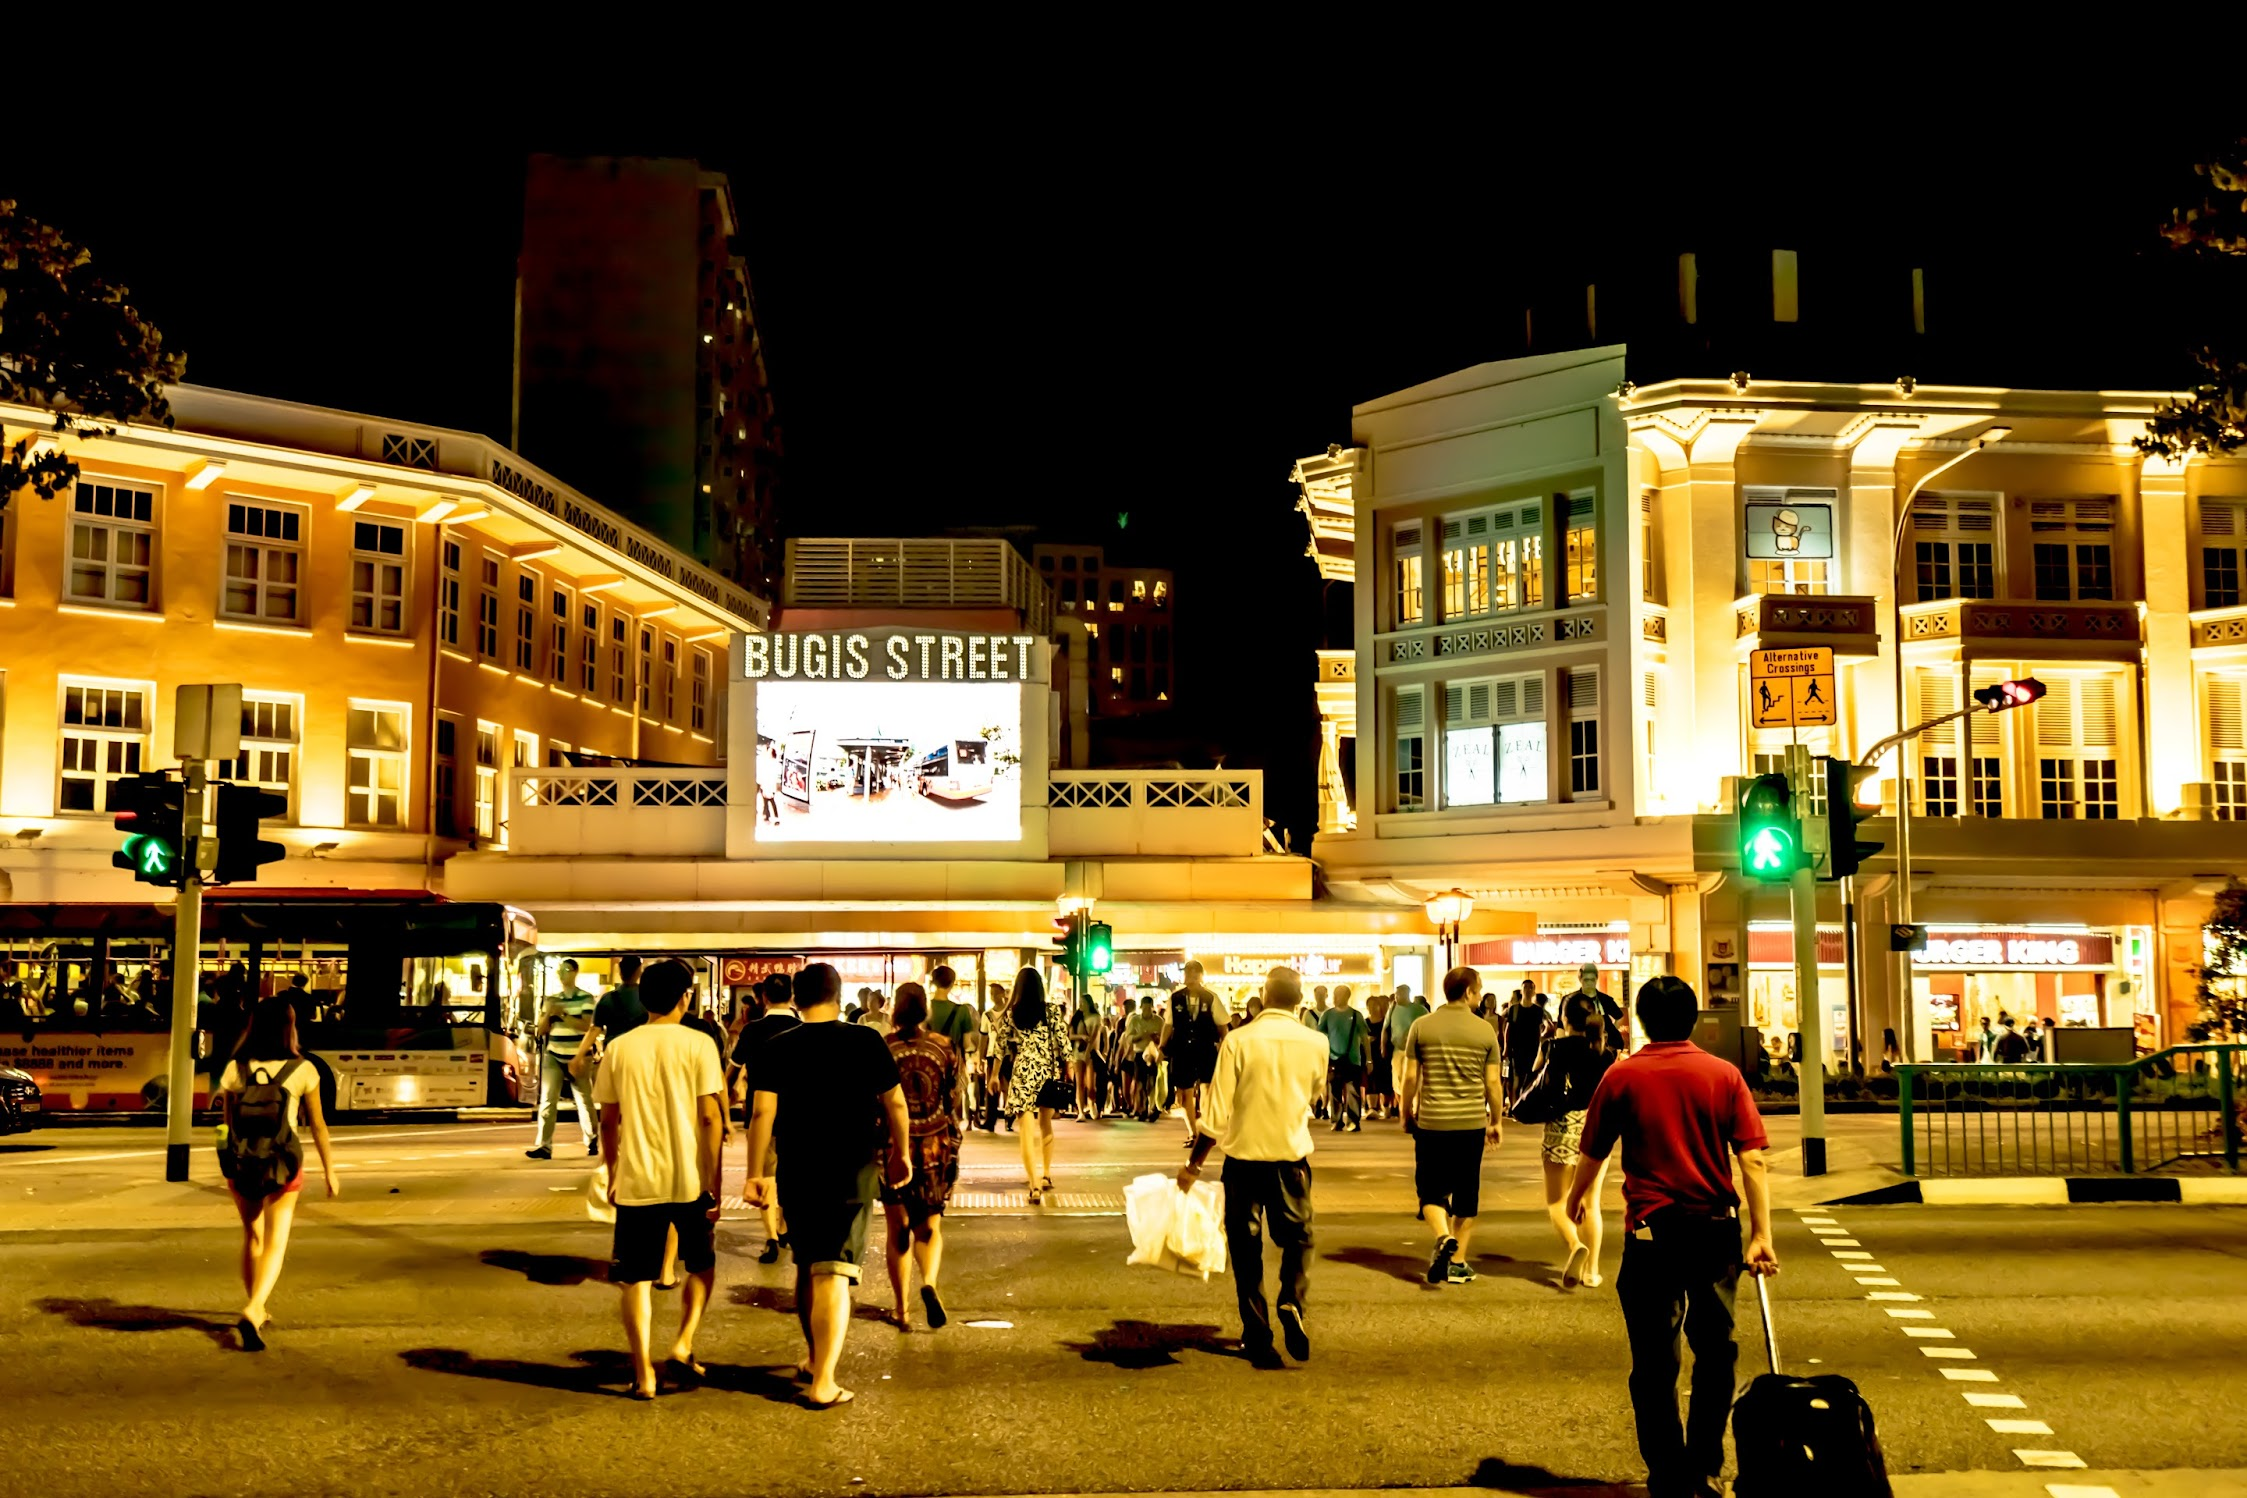 Singapore Bugis street night view